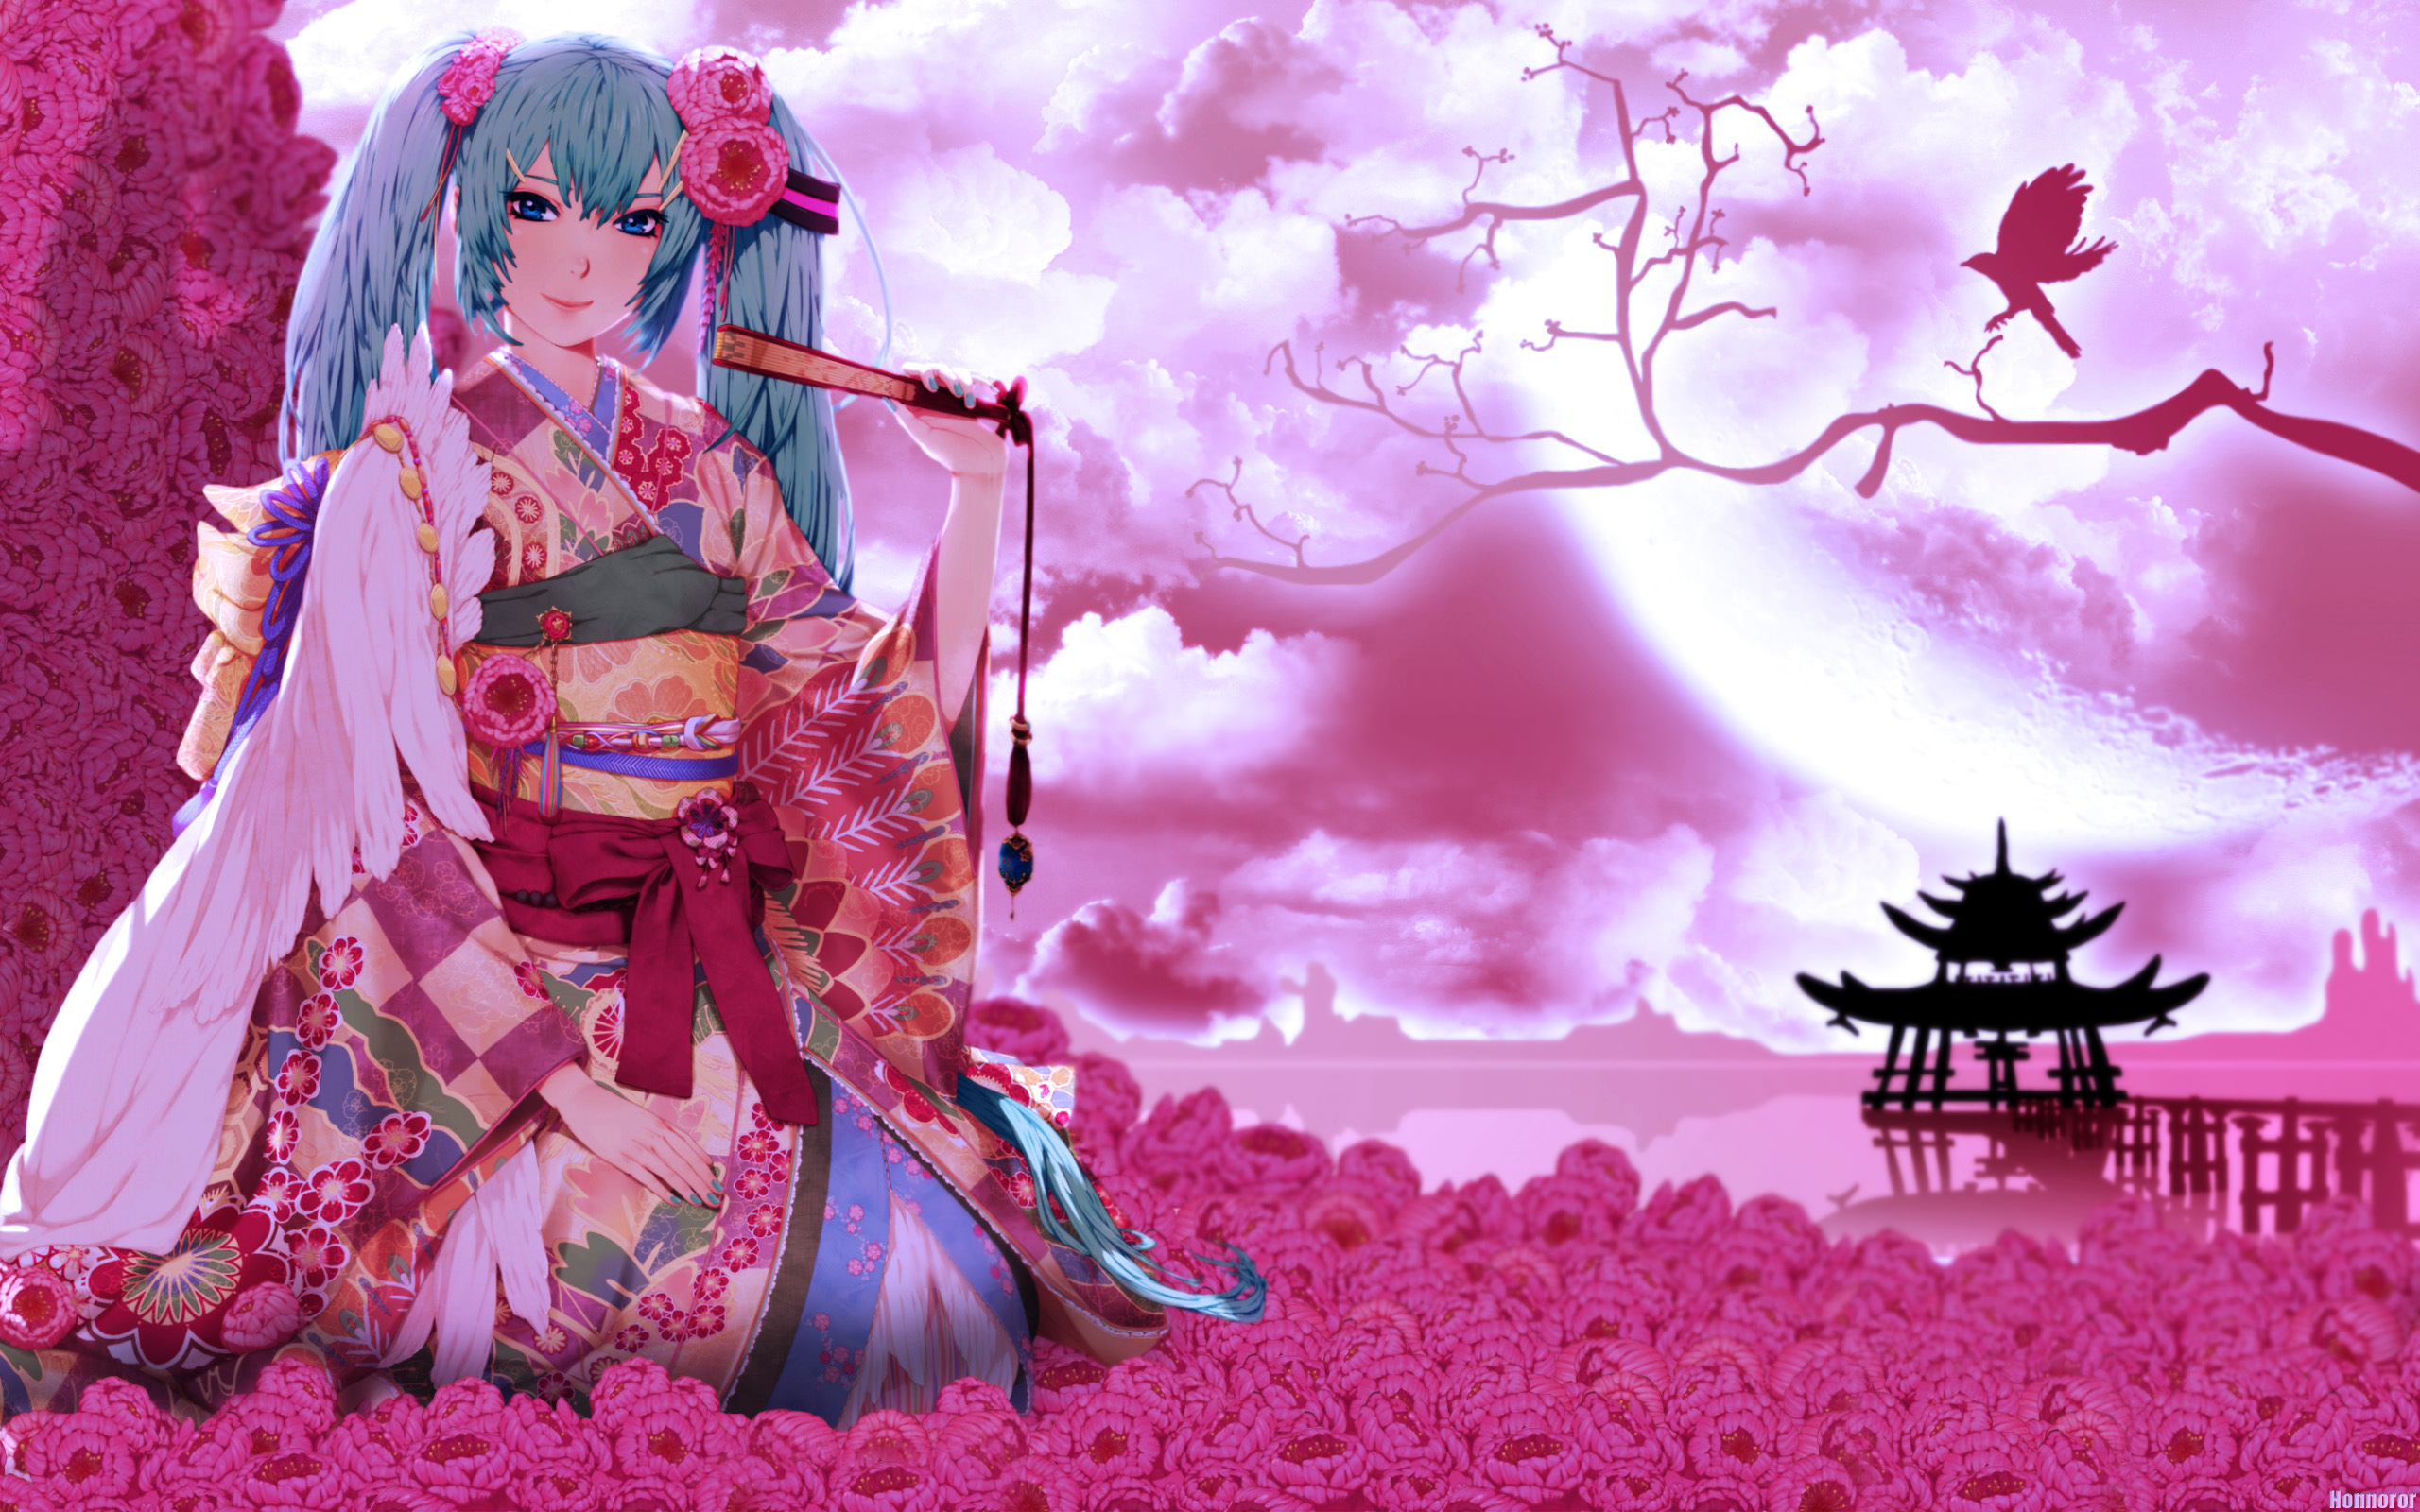 Anime Girl Wallpaper Hd Pink Hair Neko Hatsune Miku Geisha Girl Wallpaper And Background Image